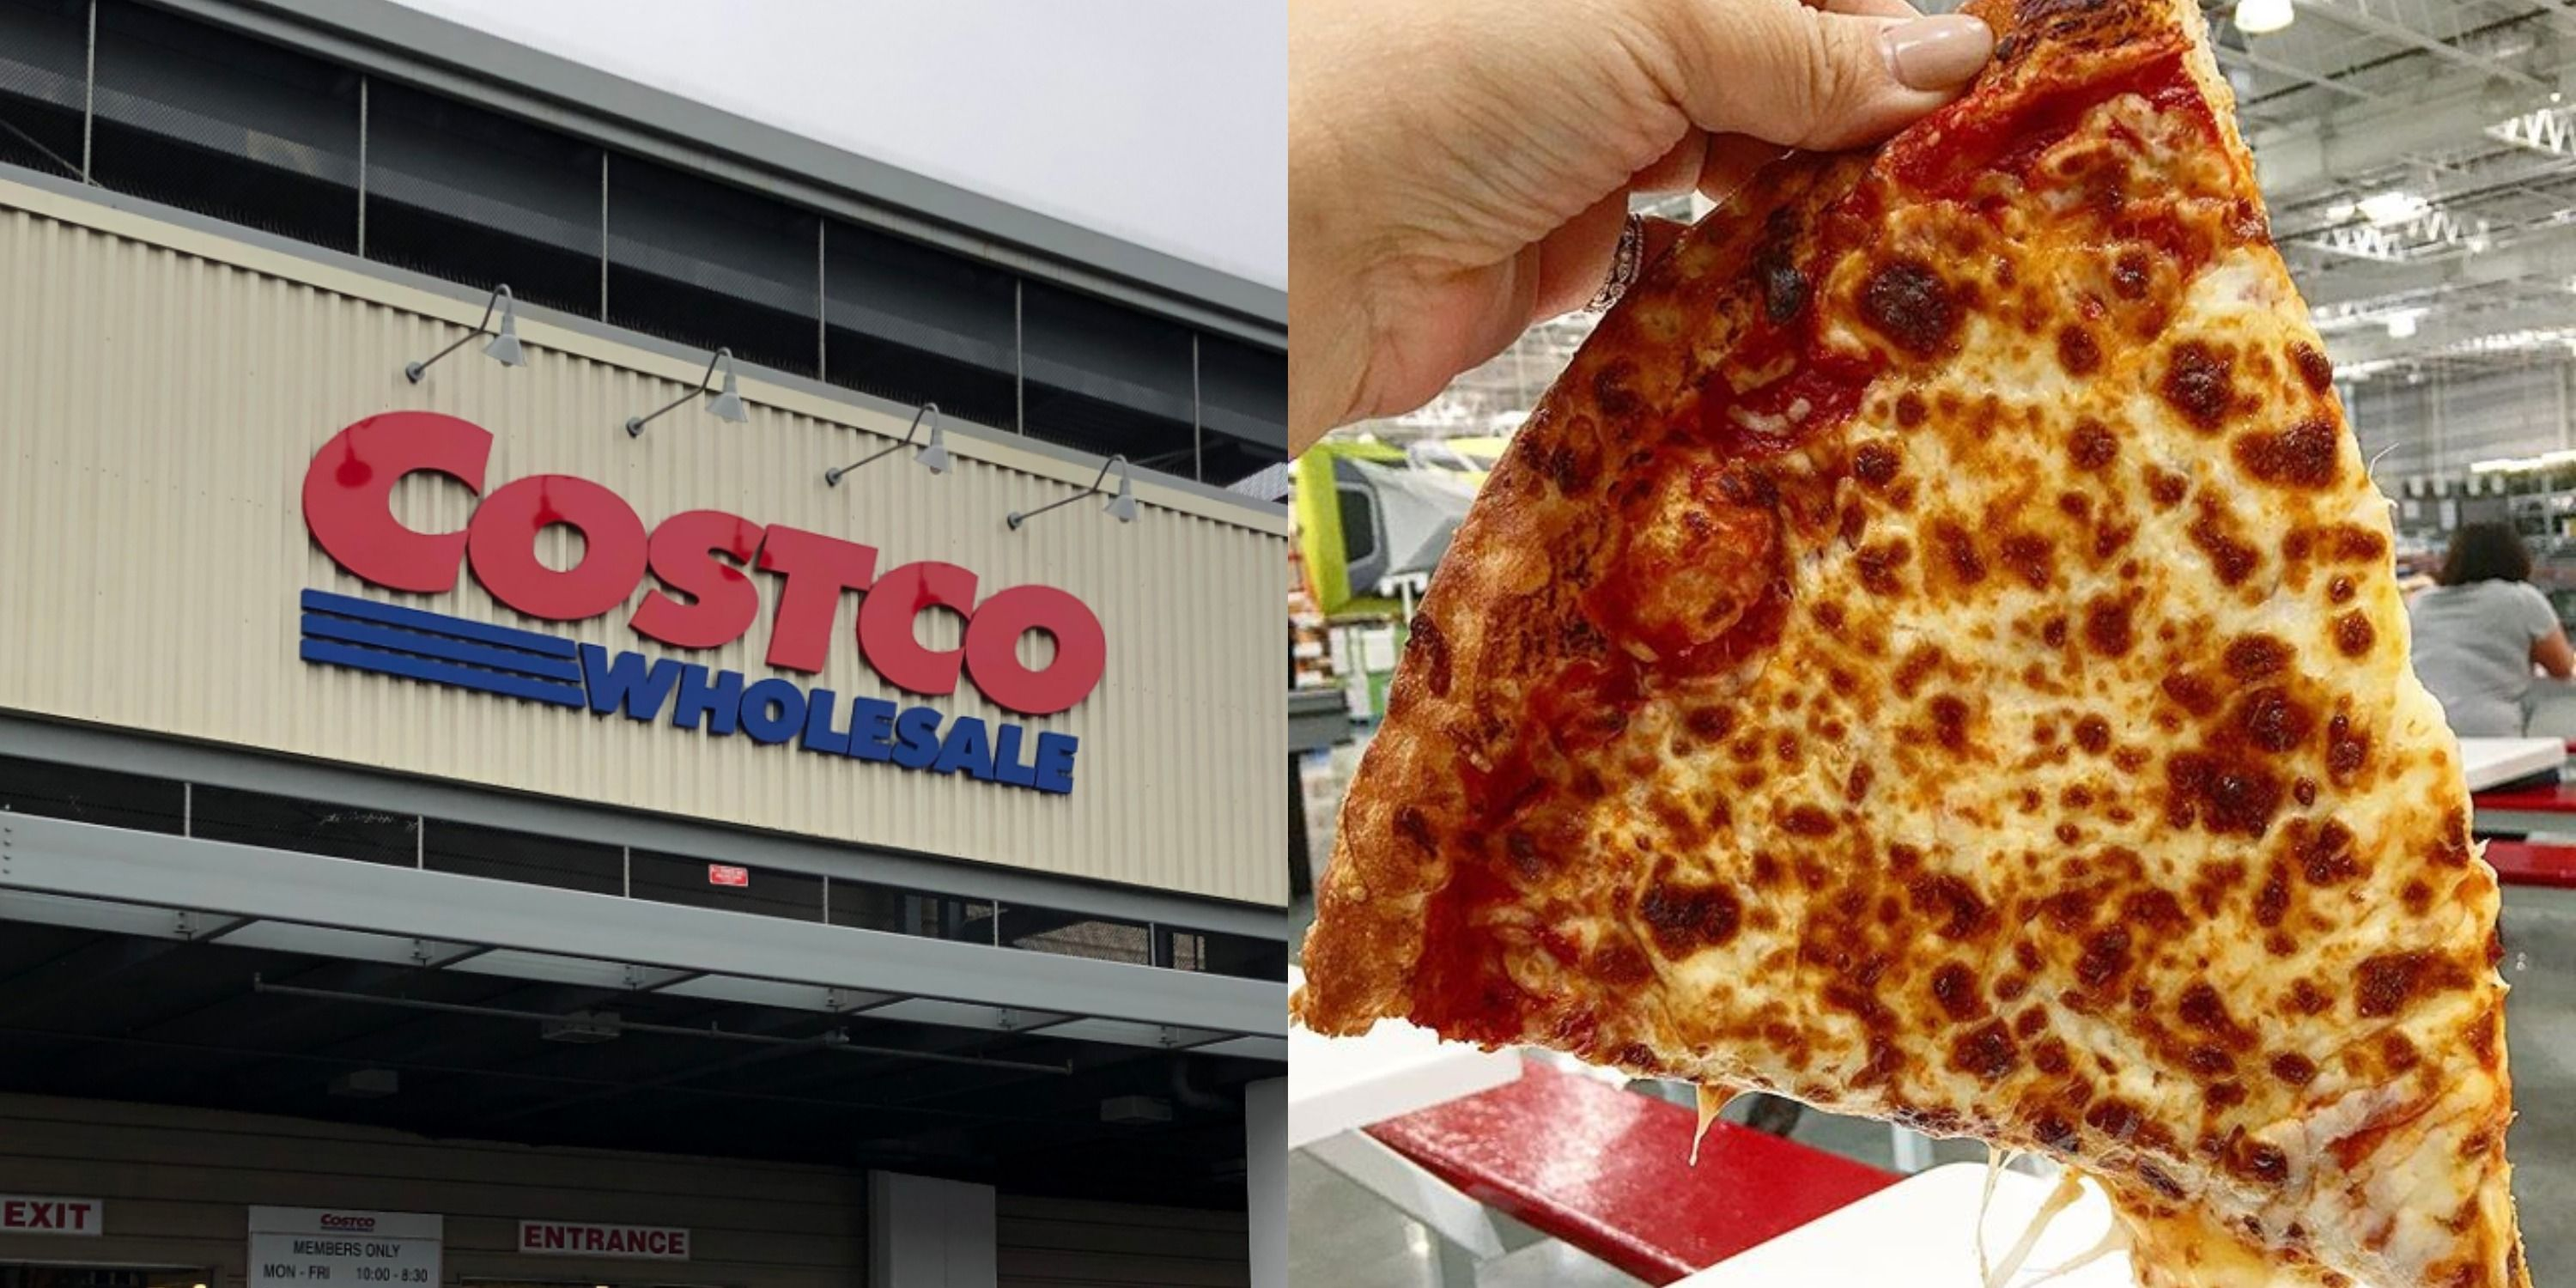 Costco Christmas Food 2020 Costco Won't Let People Eat At Its Food Court Without A Membership